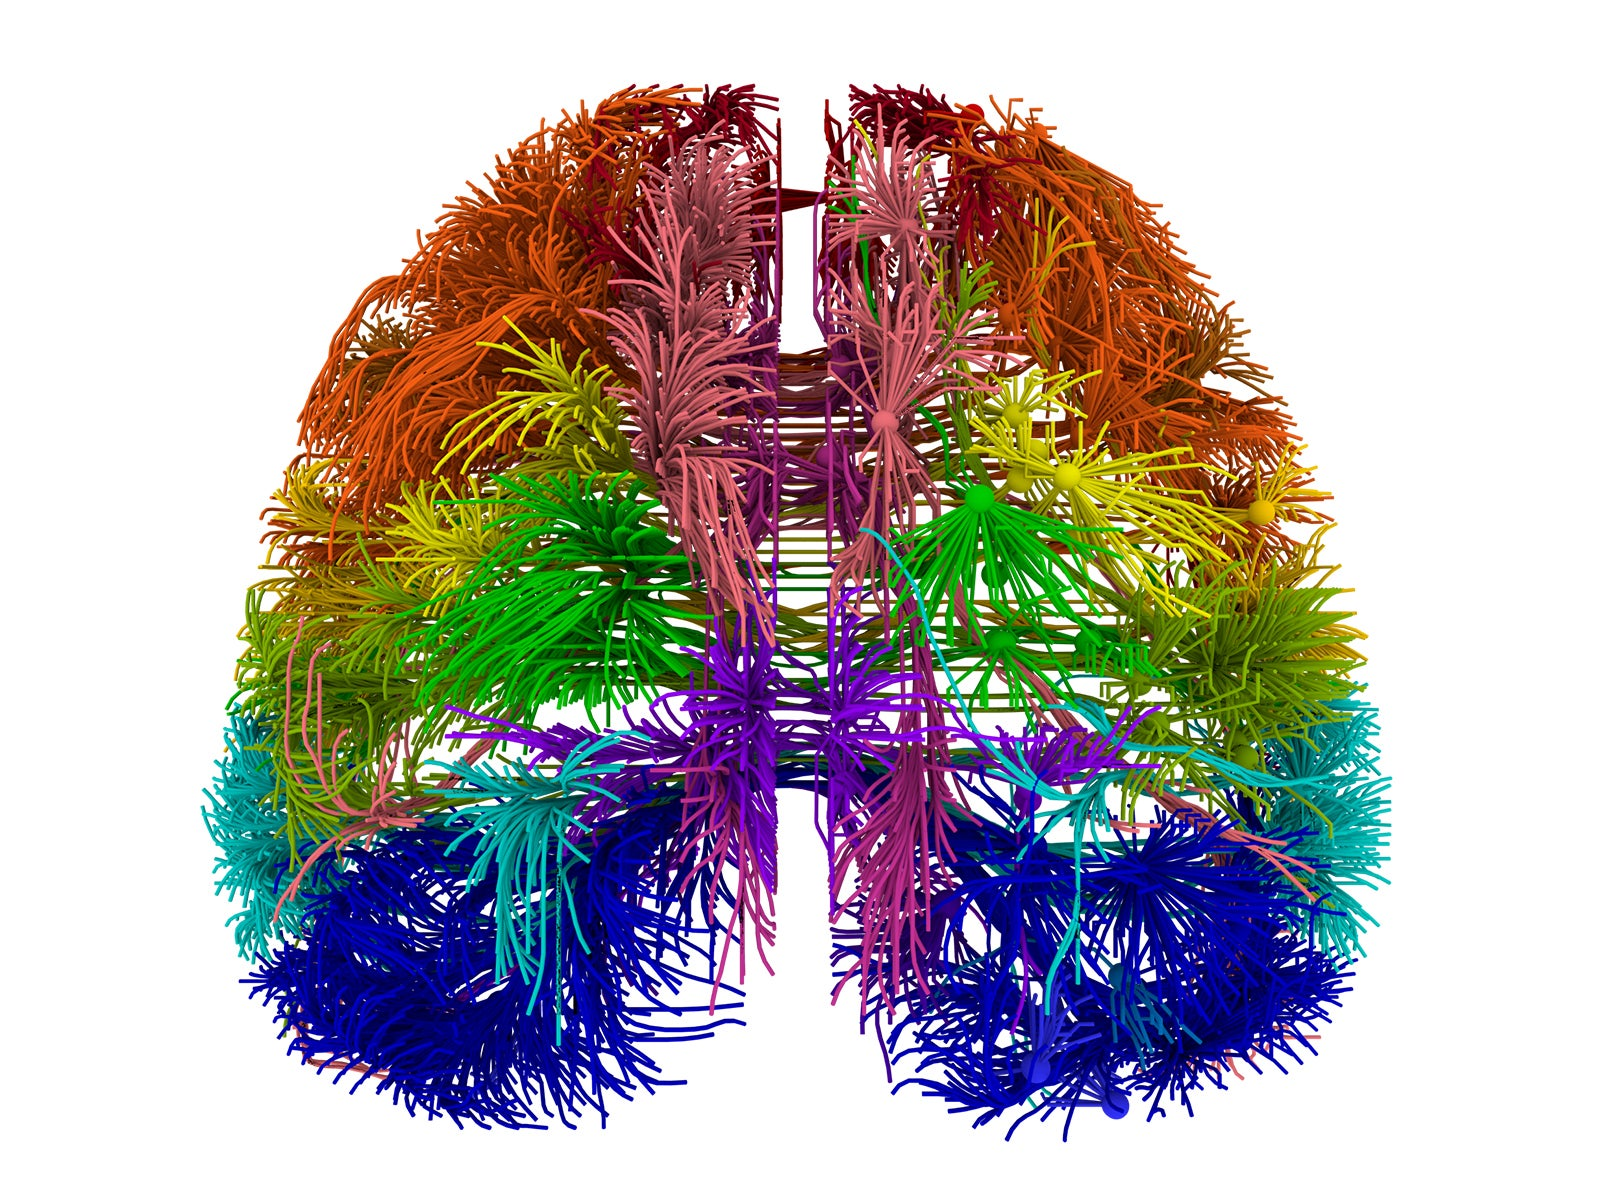 brain science years virtual scientific allen visualized distinct originating cortical cortico tractography connections areas multiple down